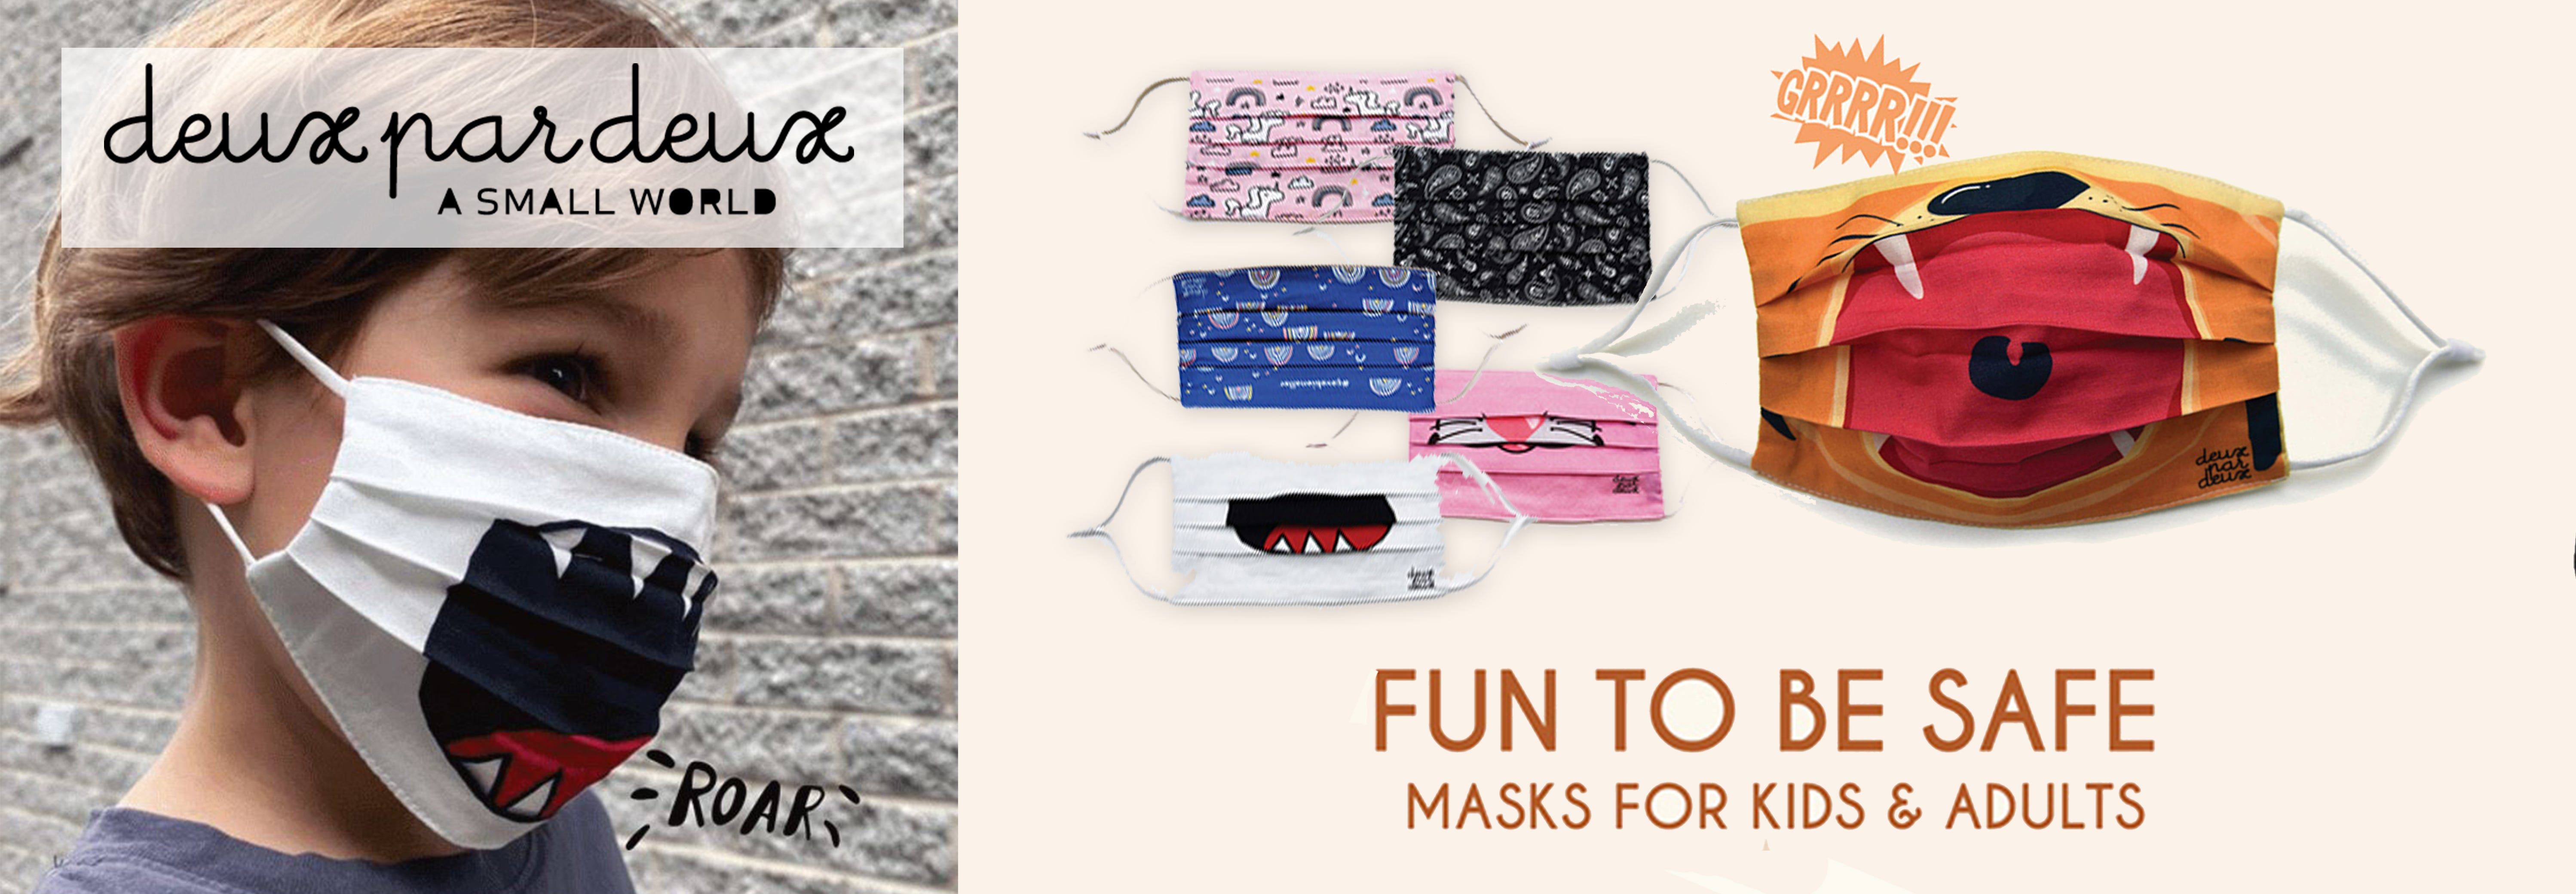 new designer kids masks banner